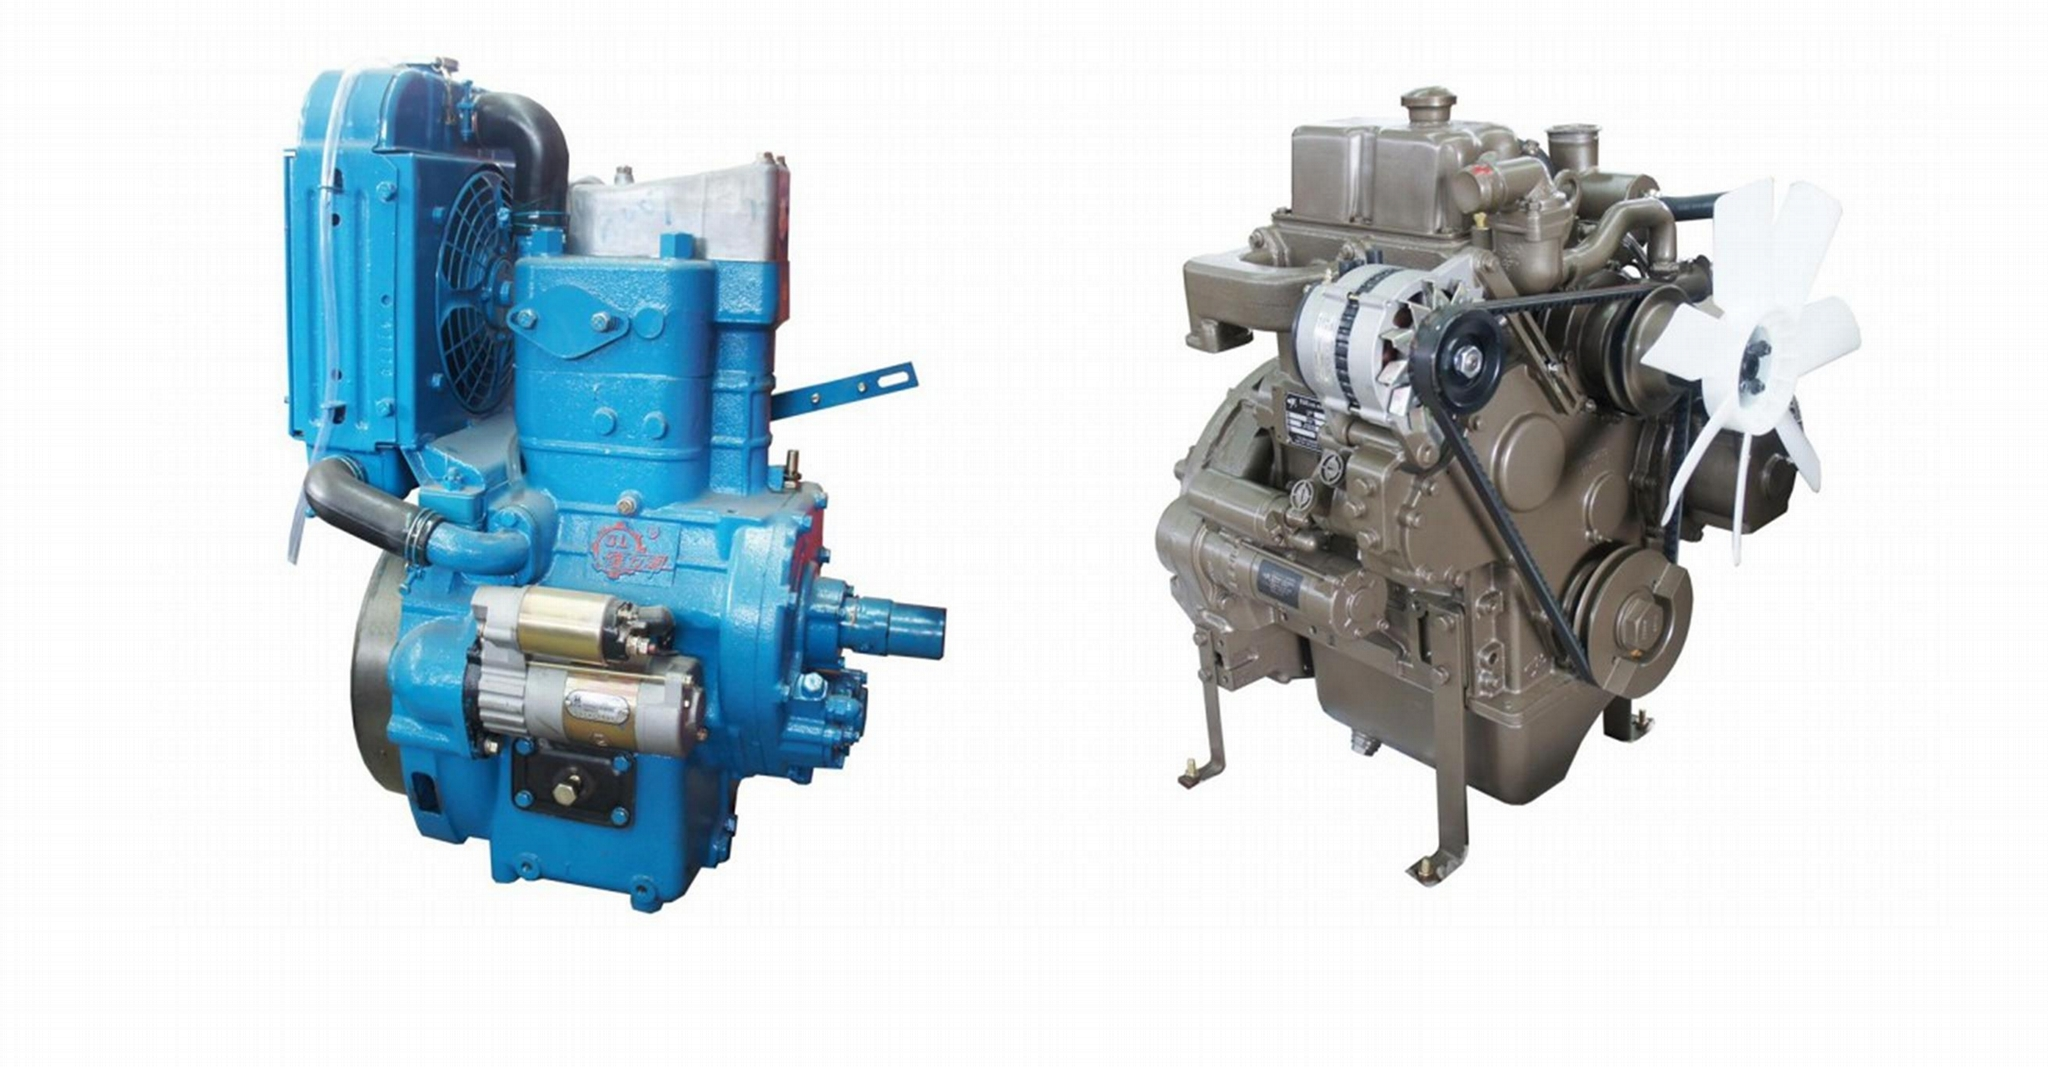 1 cylinder and 2 cylinder diesel engine